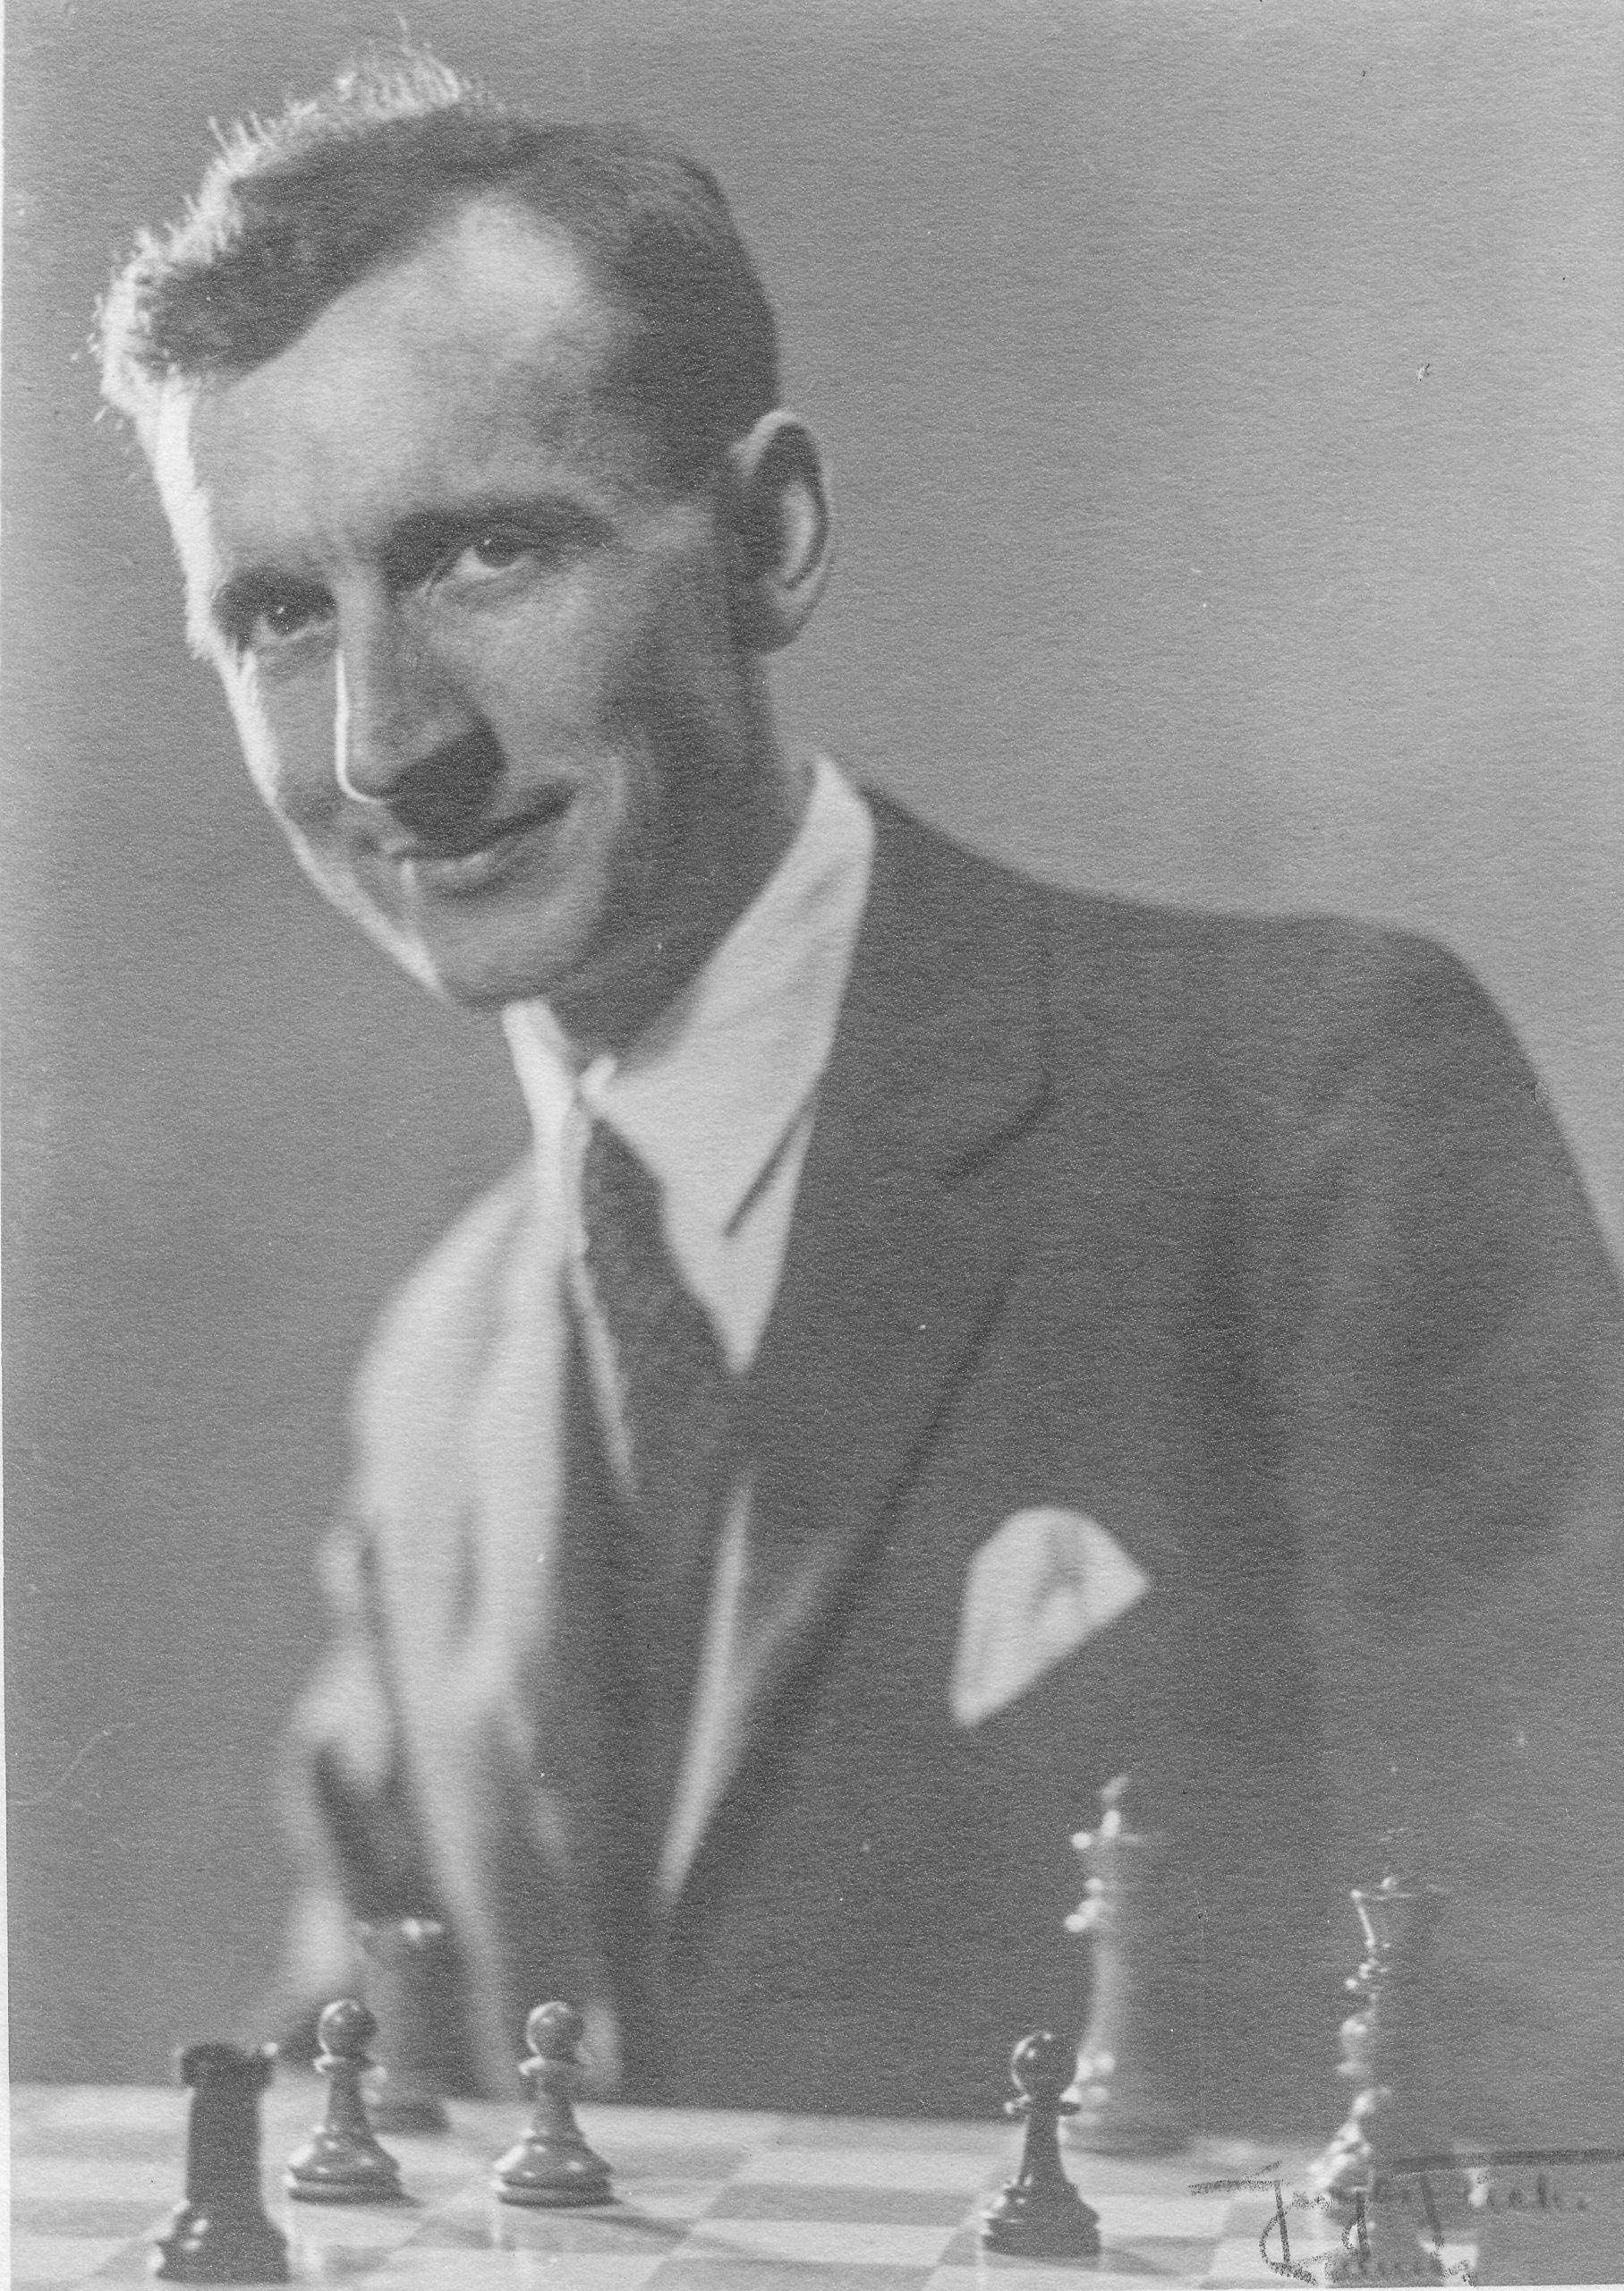 Brian Reilly probably sometime in the 1920s.